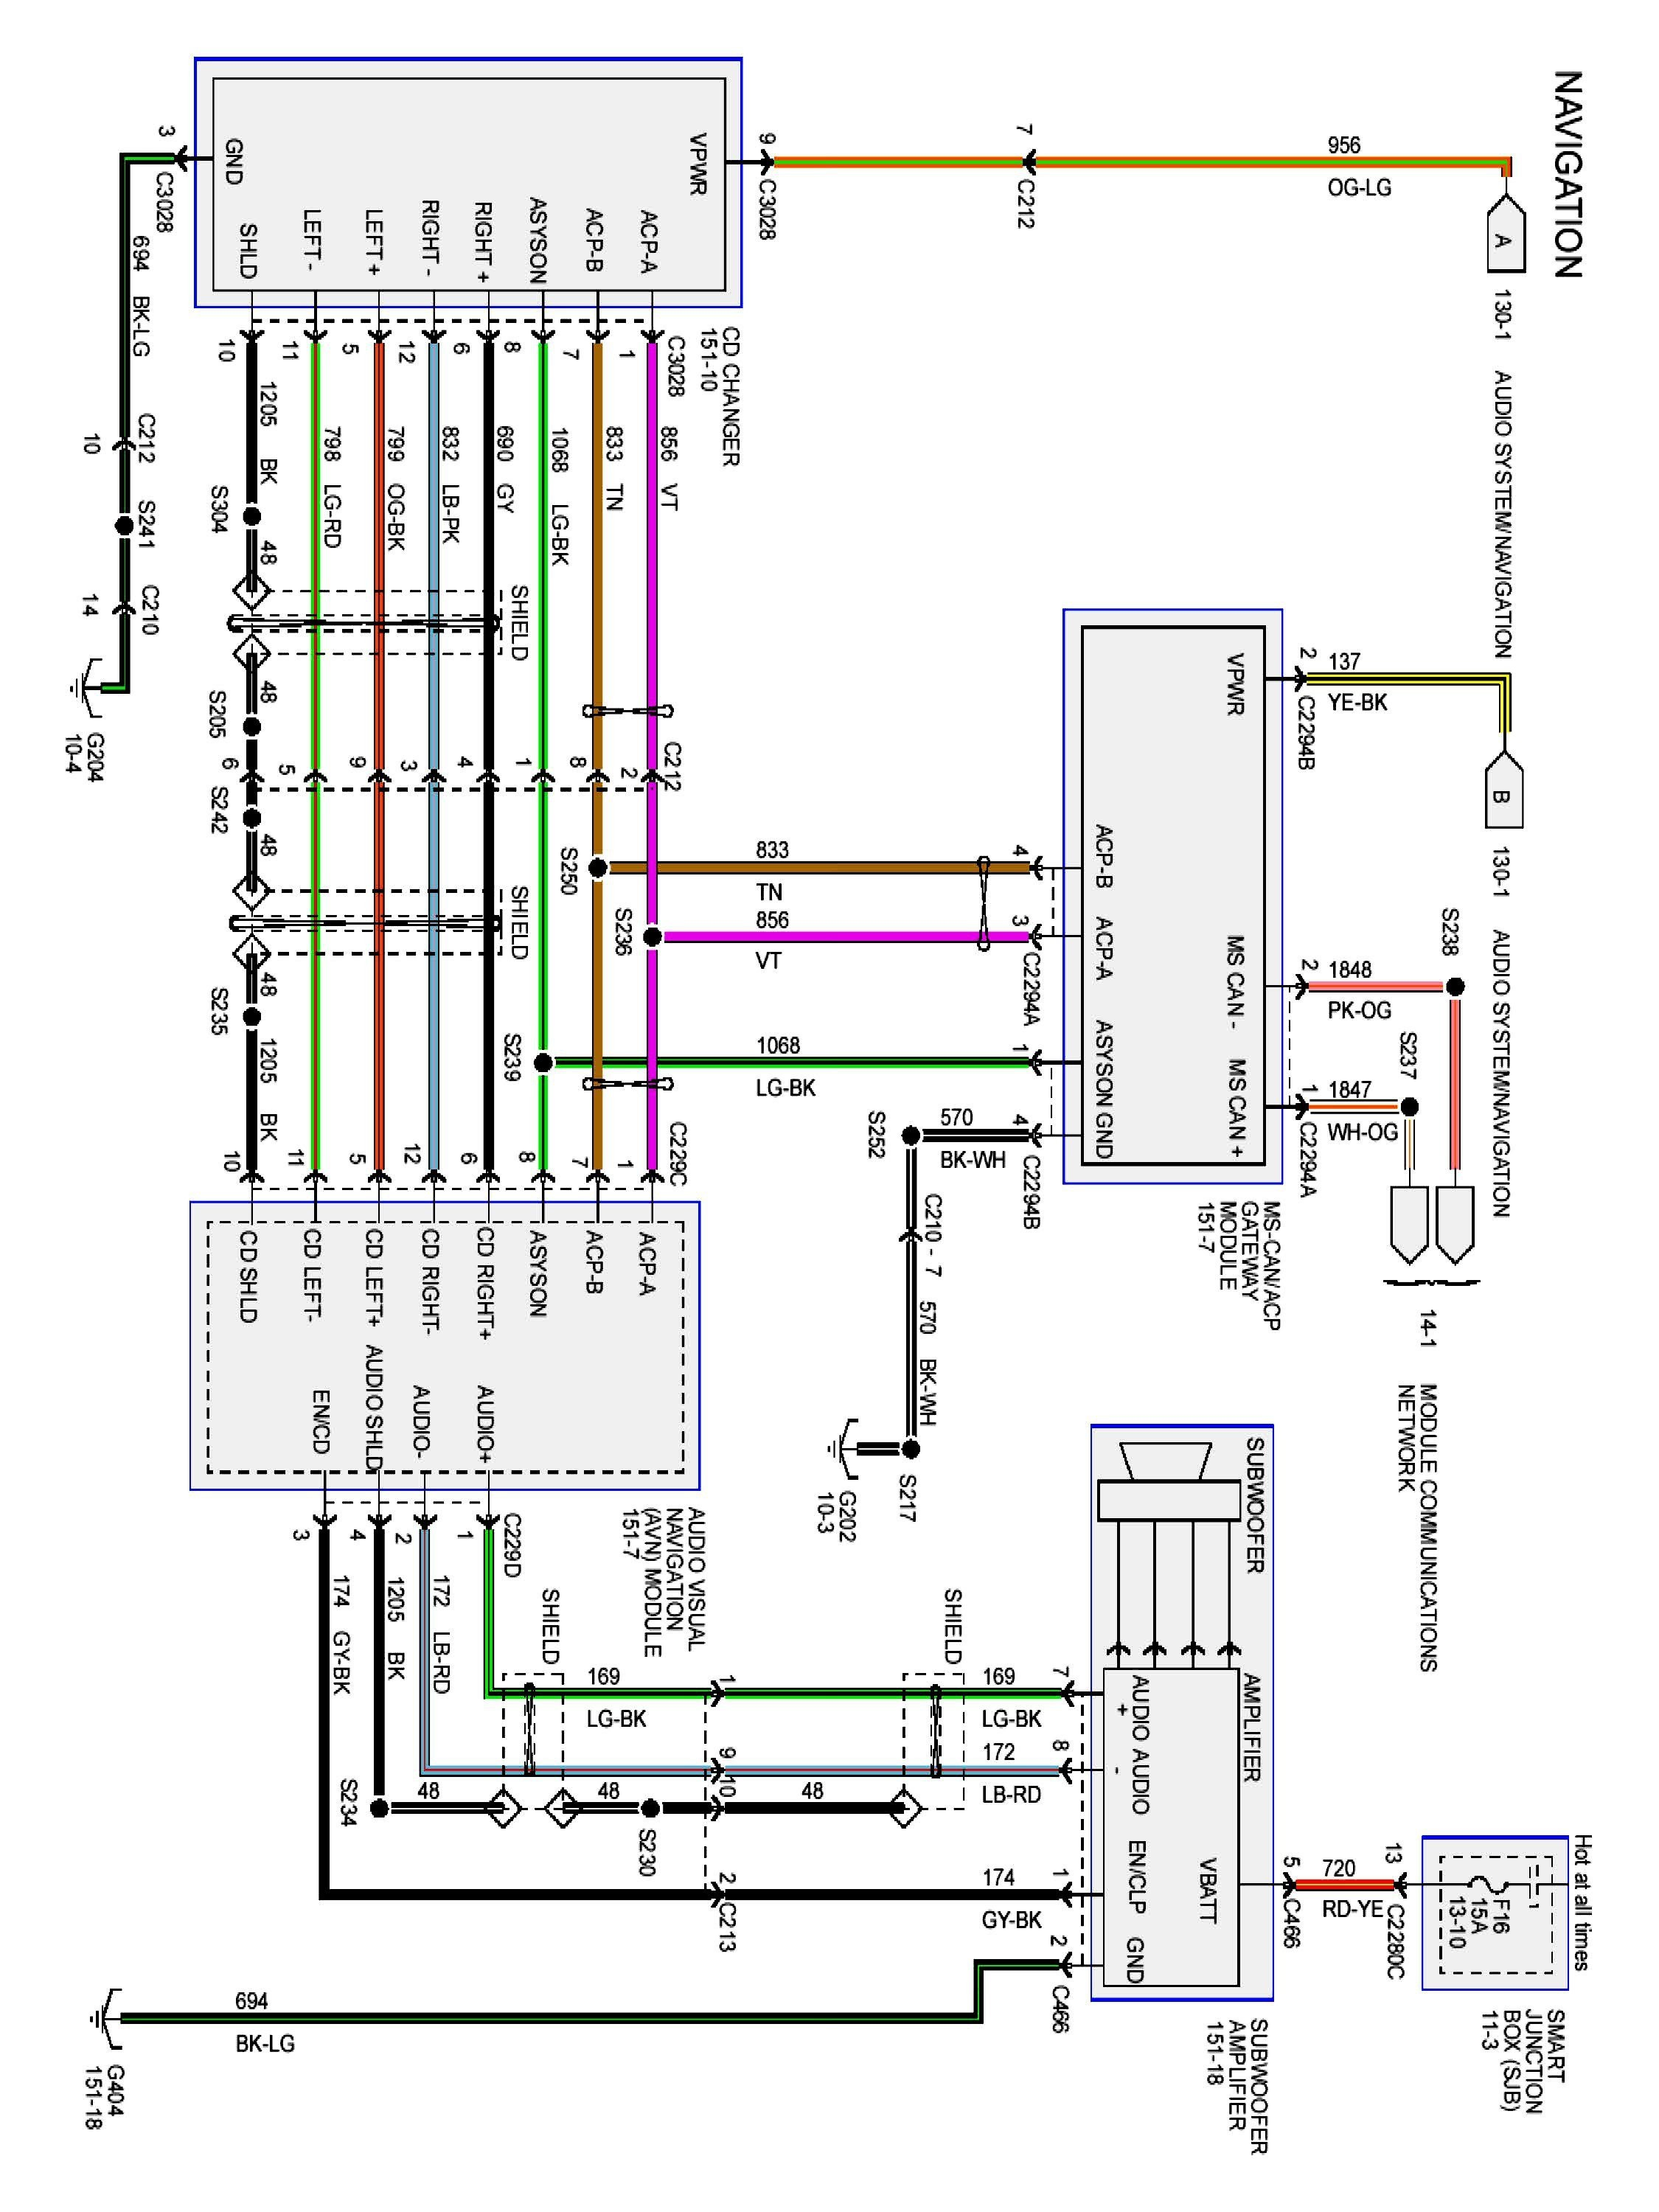 2004 Ford F350 Wiring Harness Diagrams Trusted Wiring Diagram \u2022 2003  Ford F-250 Wiring Diagram 2005 Ford F250 Headlight Wiring Diagram